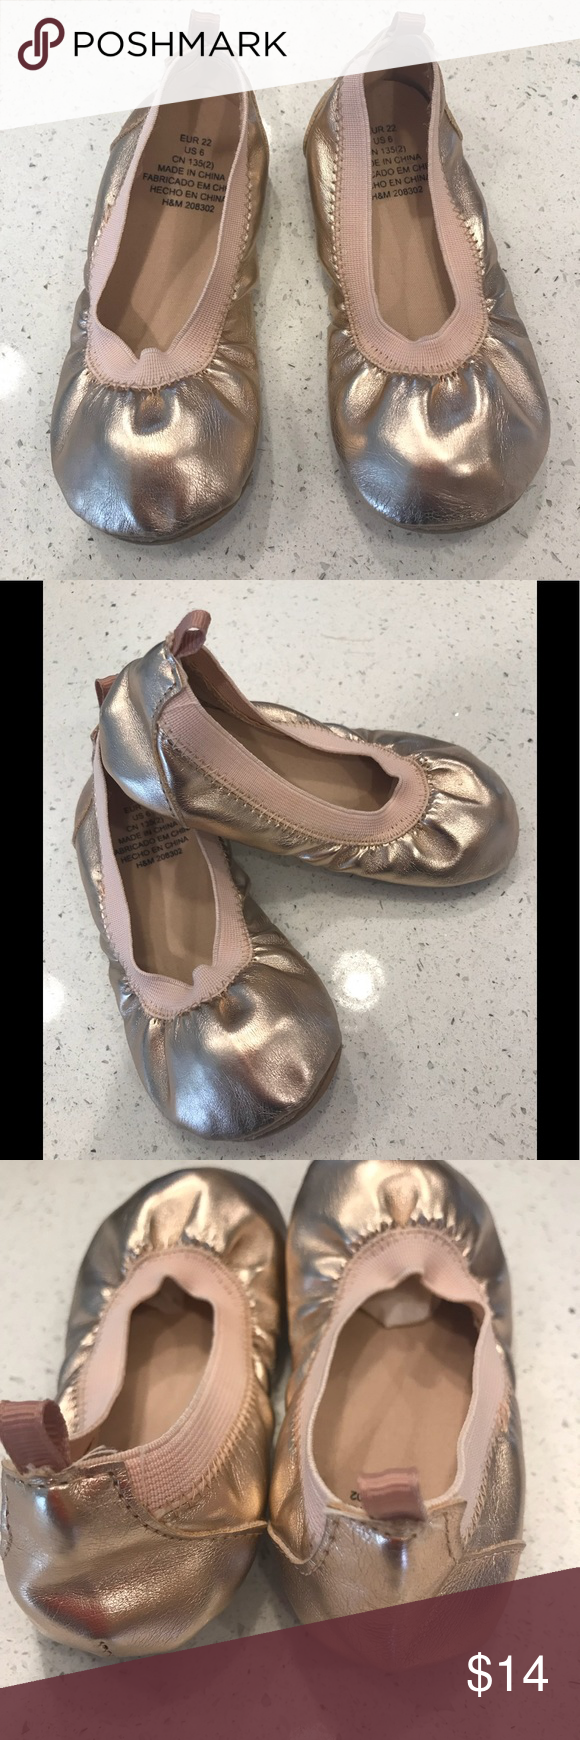 7 FIRM H&M Toddler Rose Gold Ballet Flats Sz 6 Rose